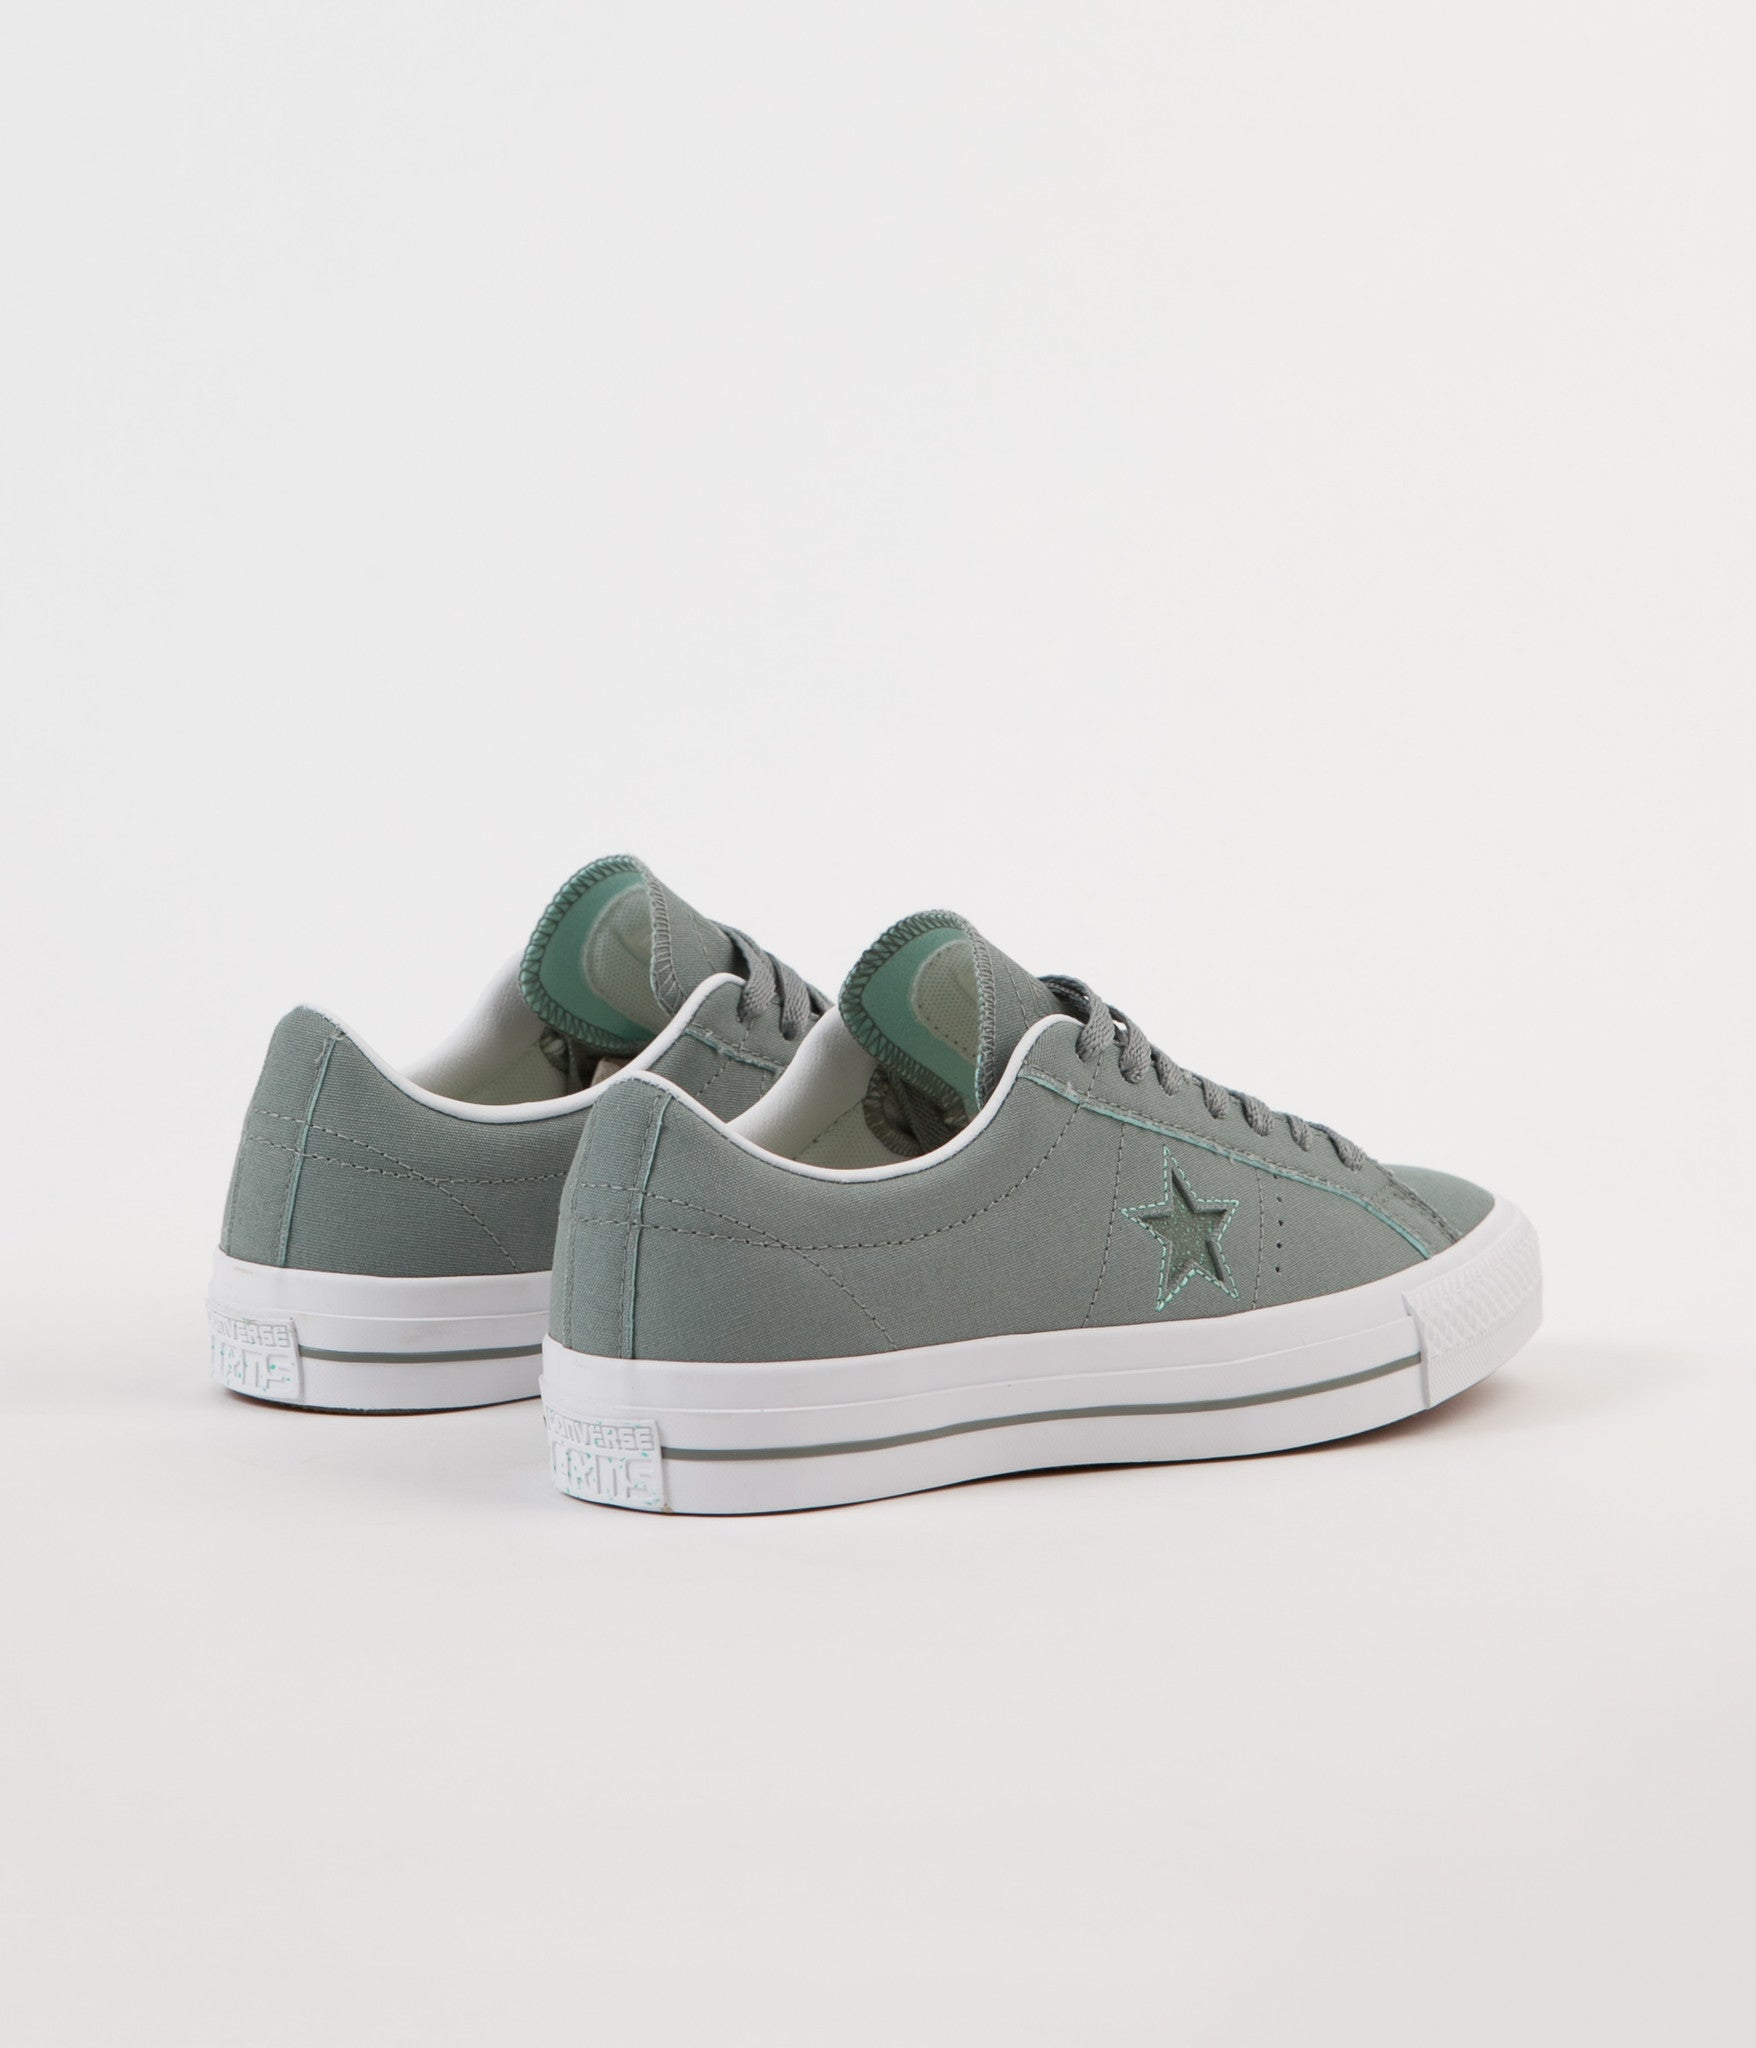 ... Converse One Star Pro Ox Shoes - Camo Green / Green Glow ...